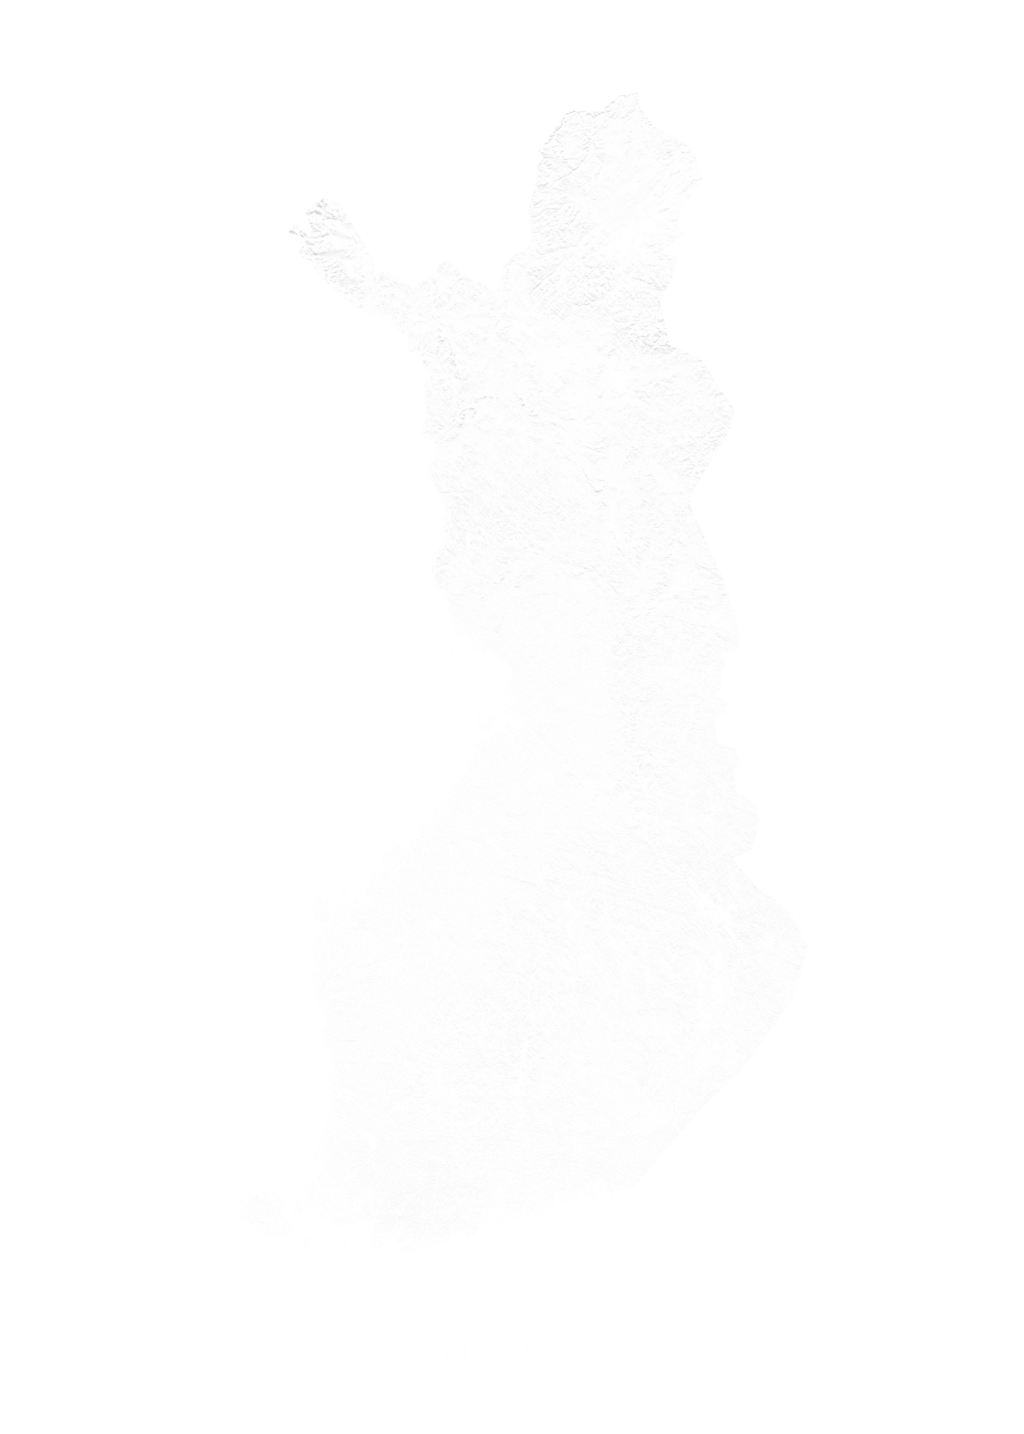 Finland wall map